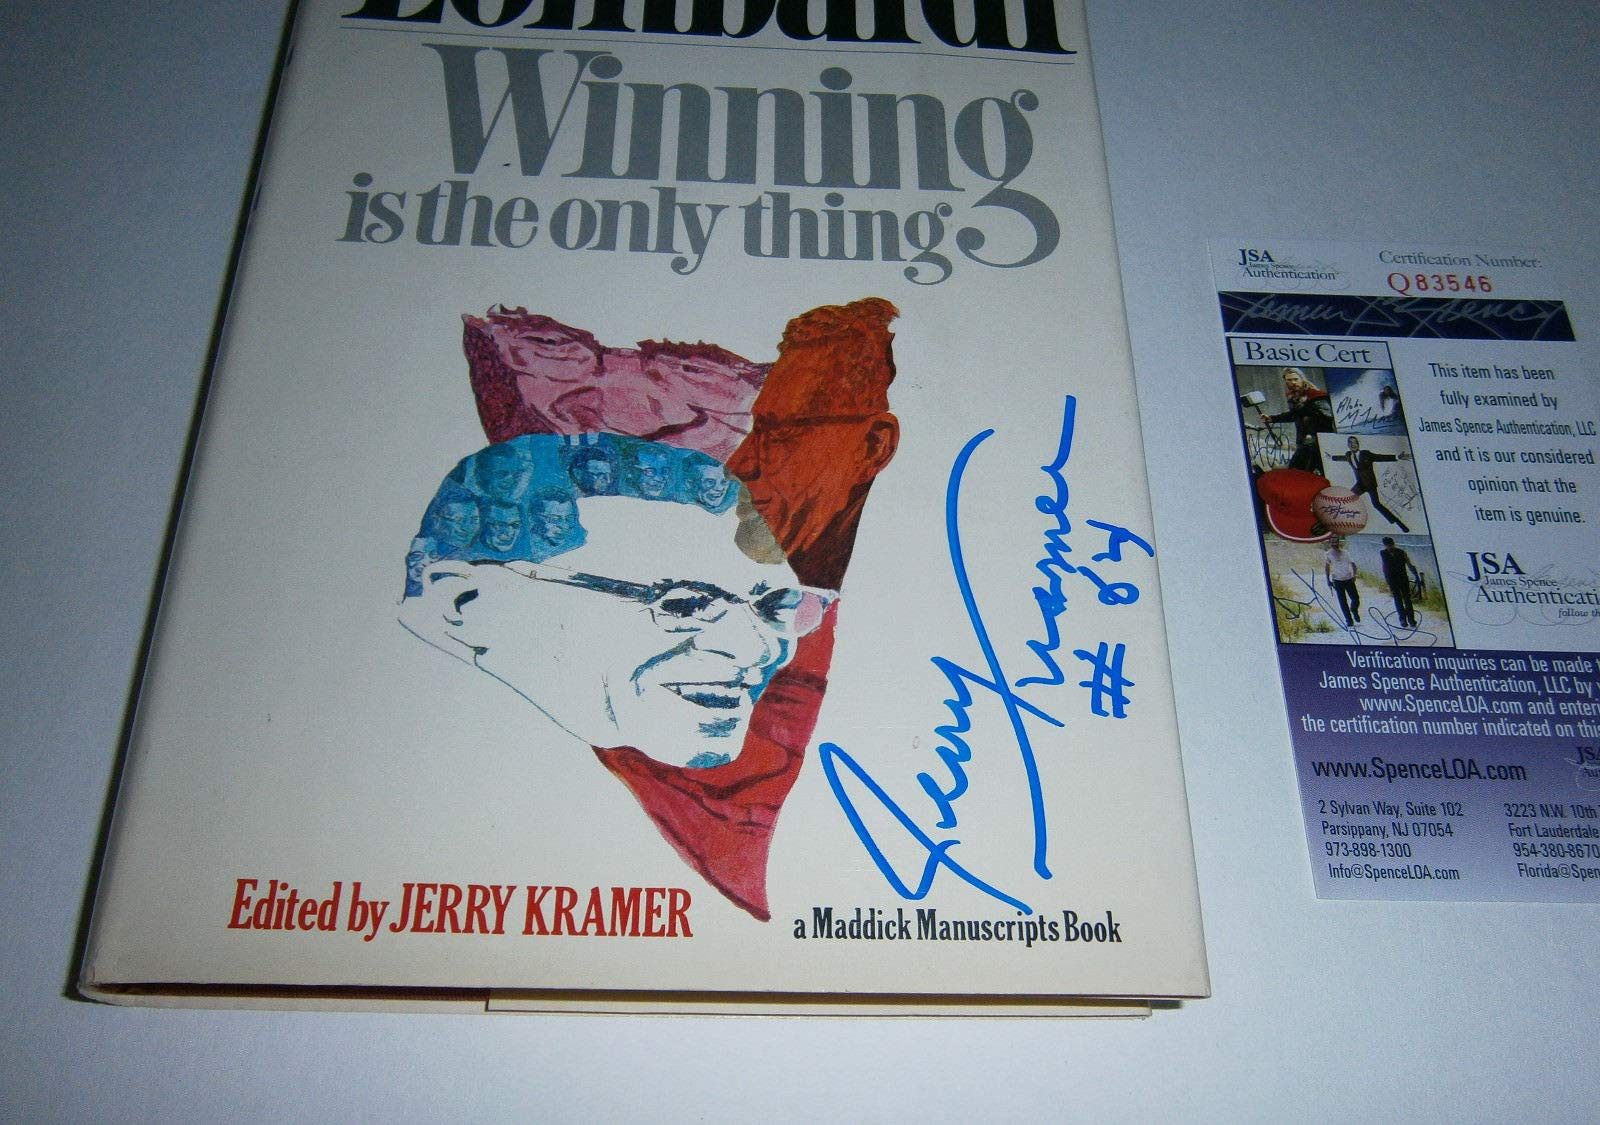 1969 Packers Jerry Kramer Autographed Signed Lombardi Winning Is Only Thng Book JSA Auto Hof